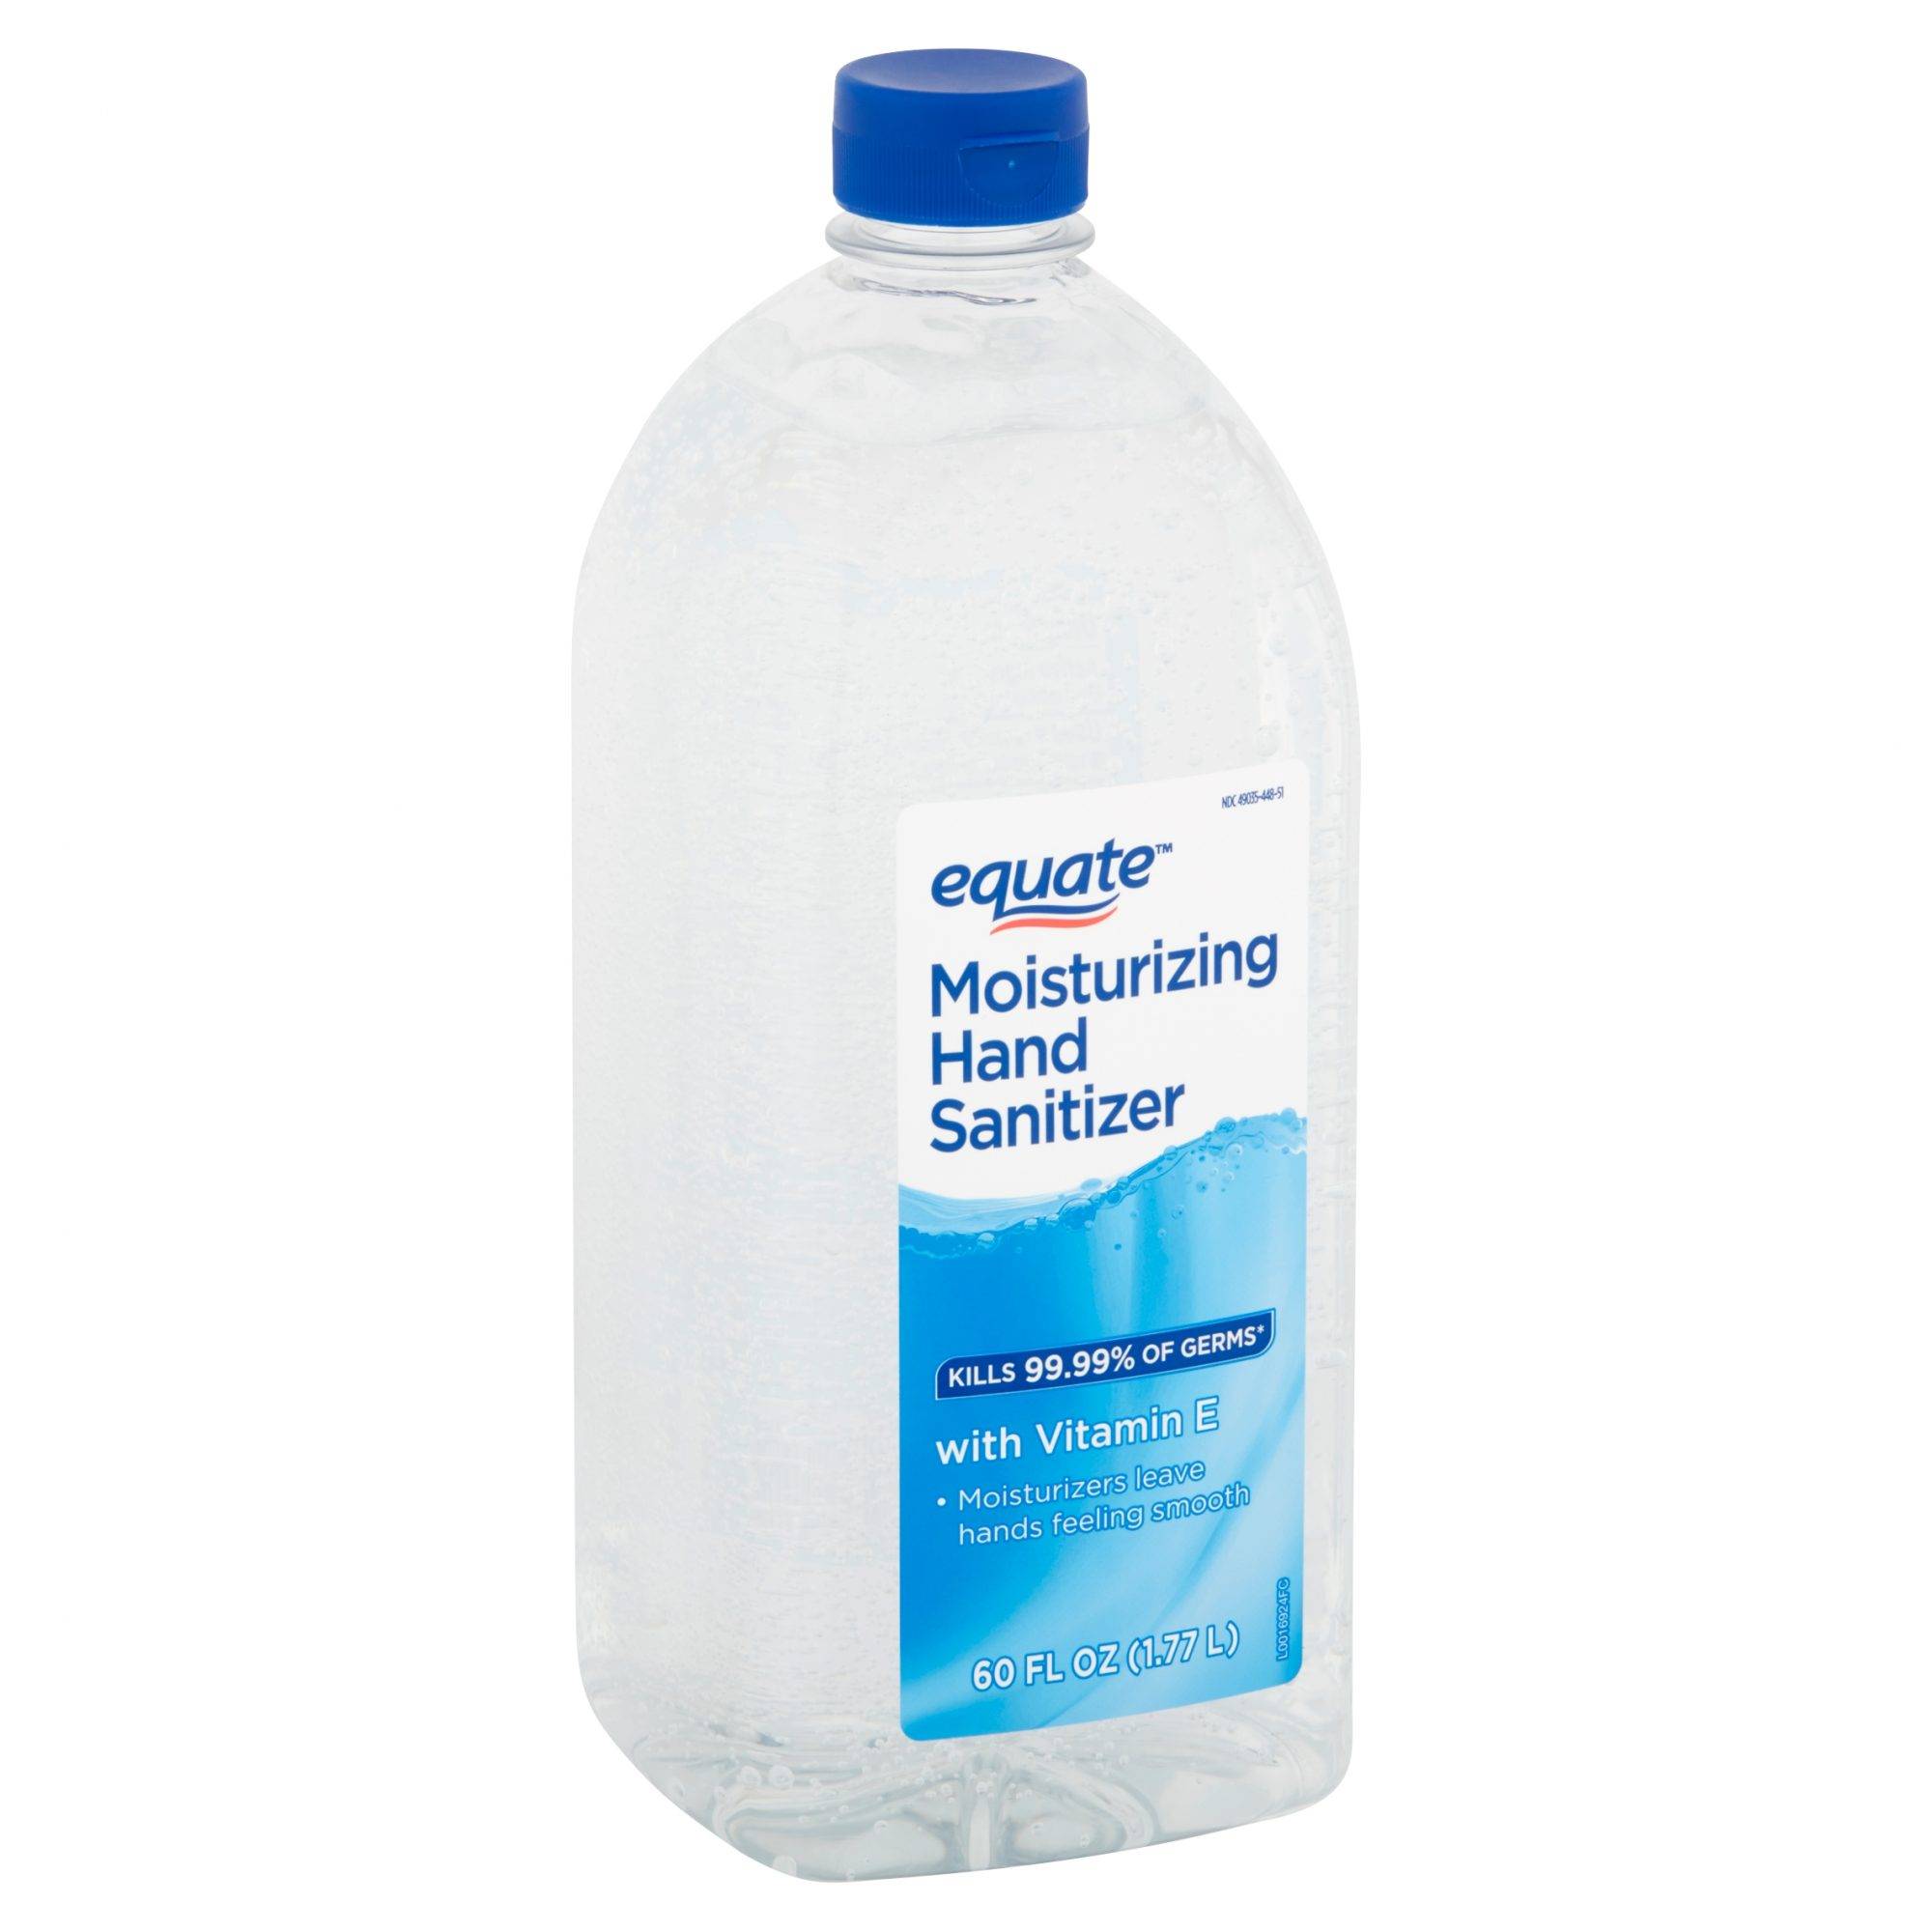 Equate hand sanitizer